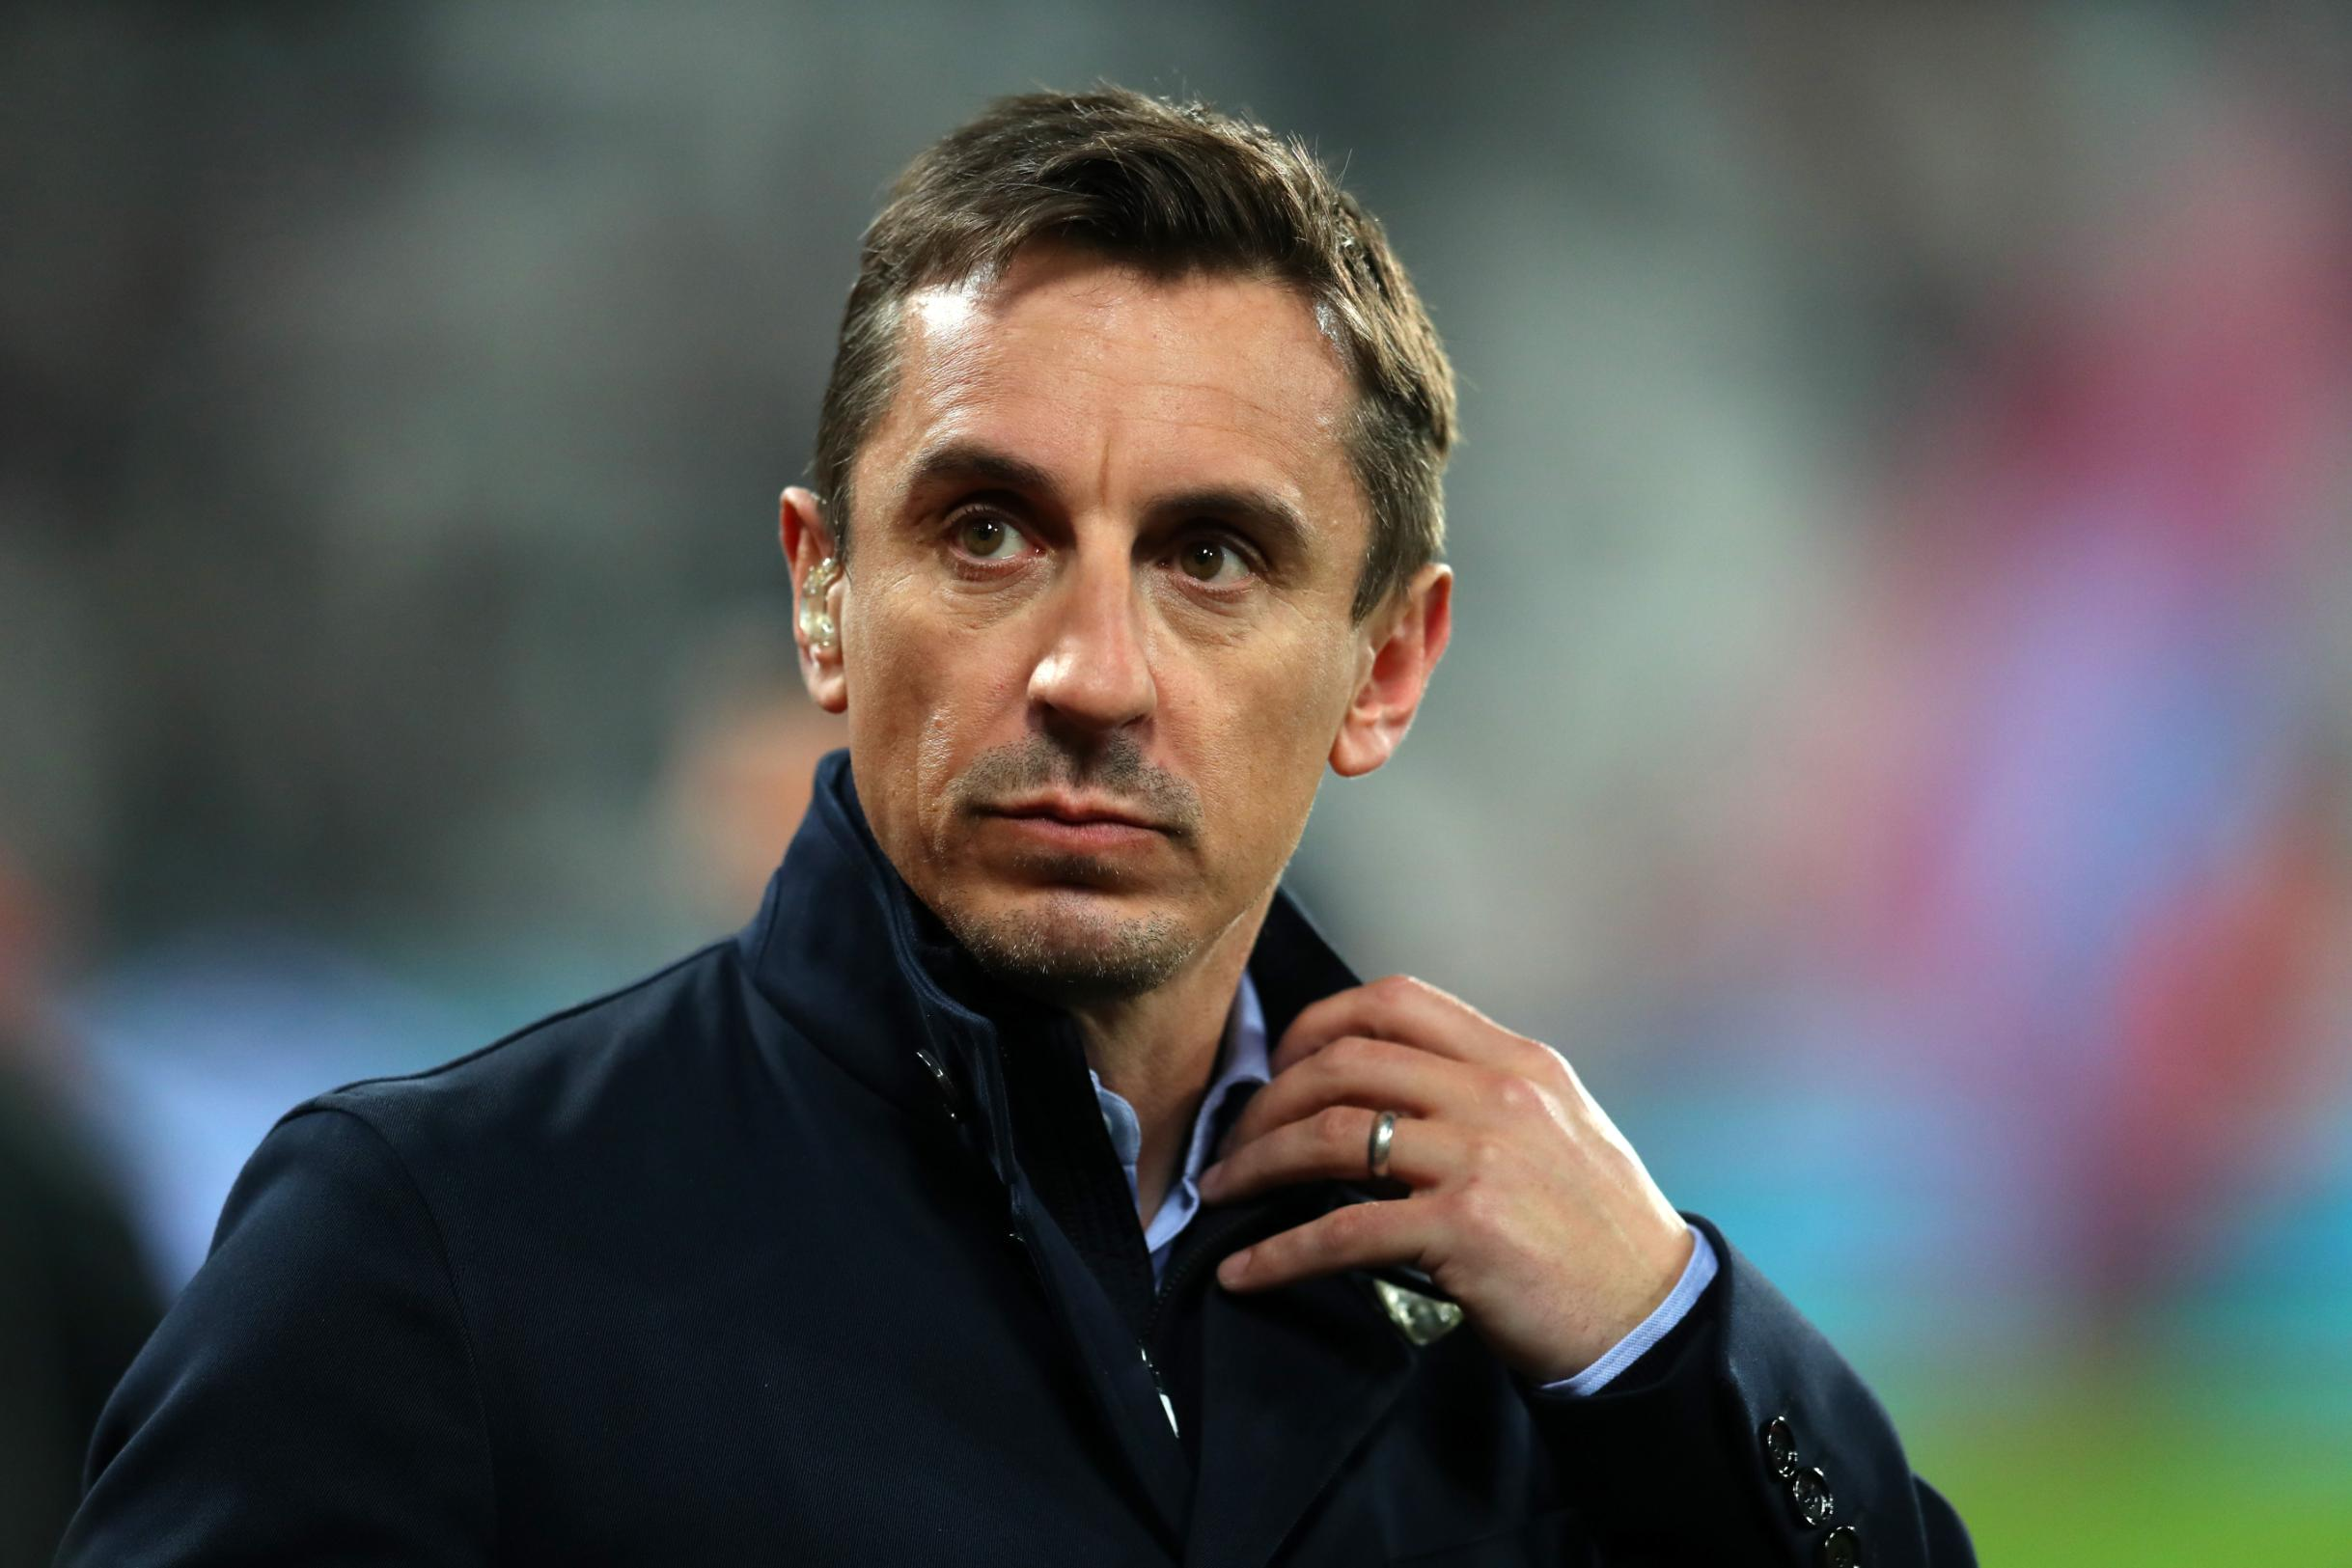 'English football needs reshaping,' says Manchester United great Gary Neville